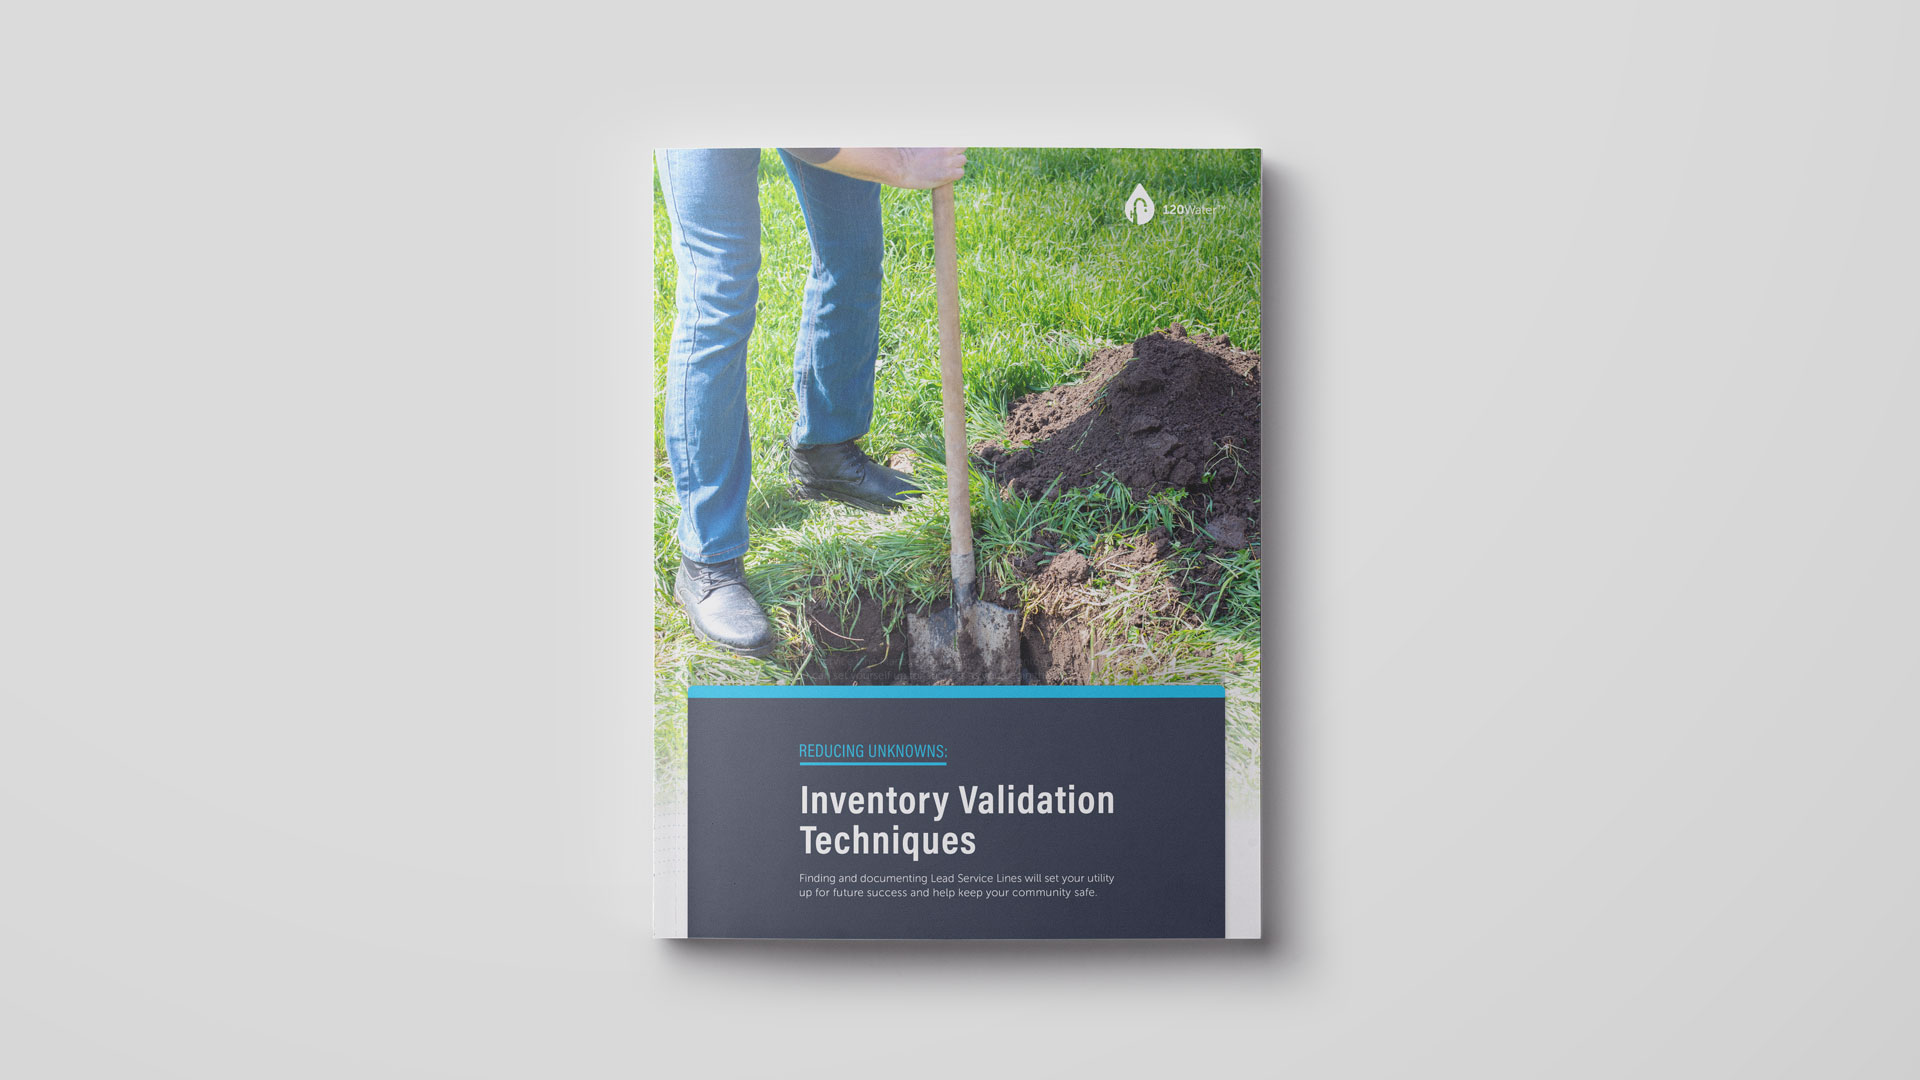 [How-To Guide] Inventory Validation Techniques